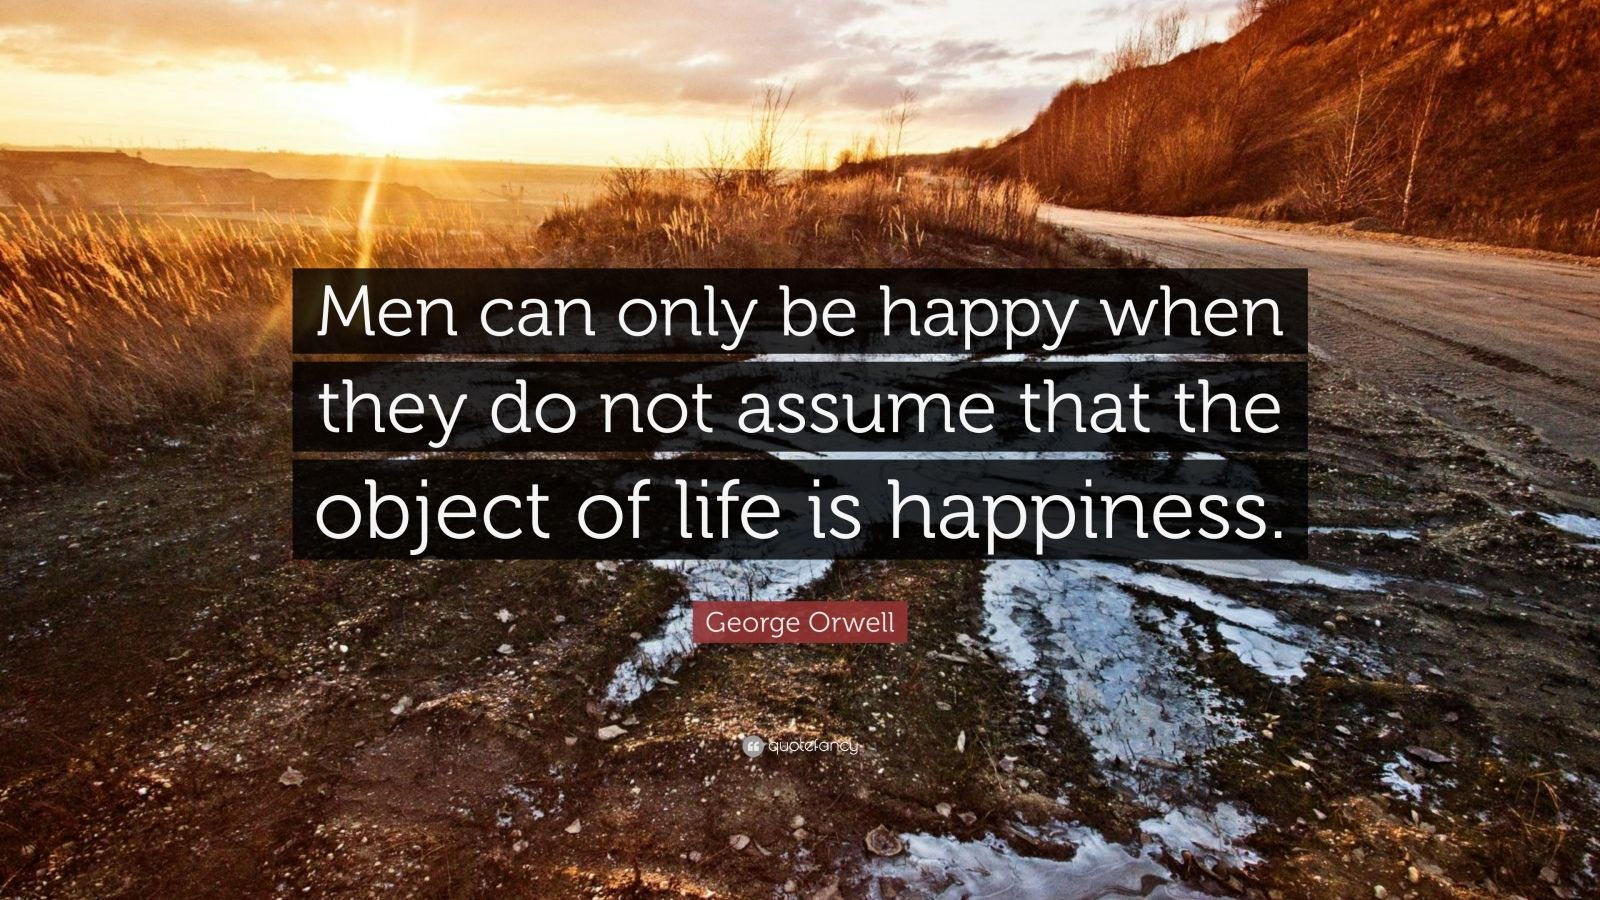 an analysis of the principles of happiness for men and women